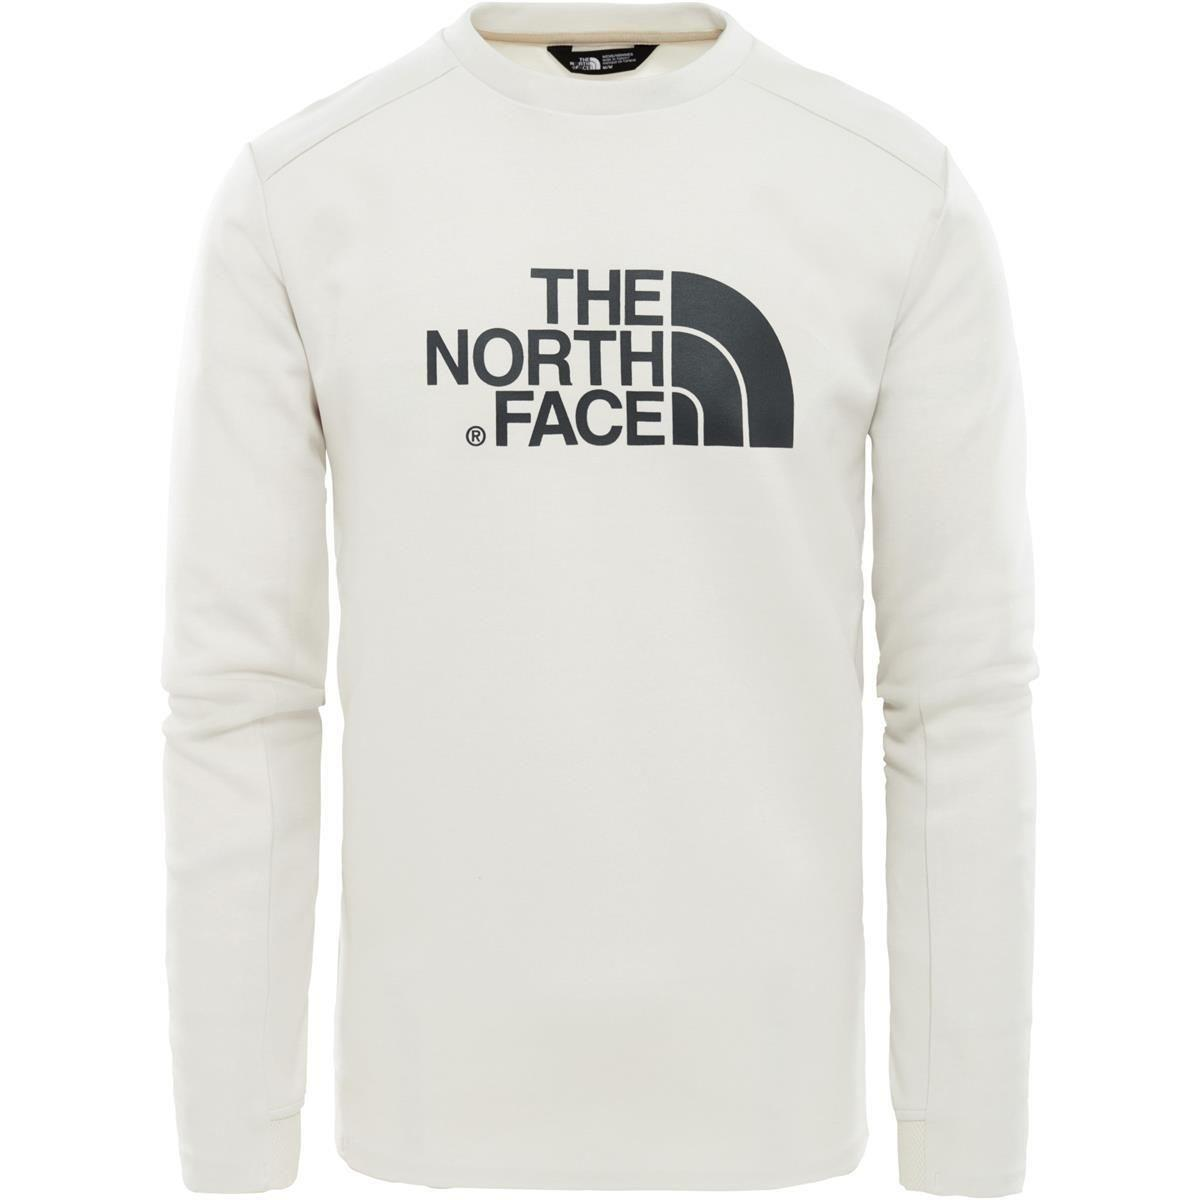 The North Face Erkek Vısta Tek L/S Gr Sweatshirt T93L36128